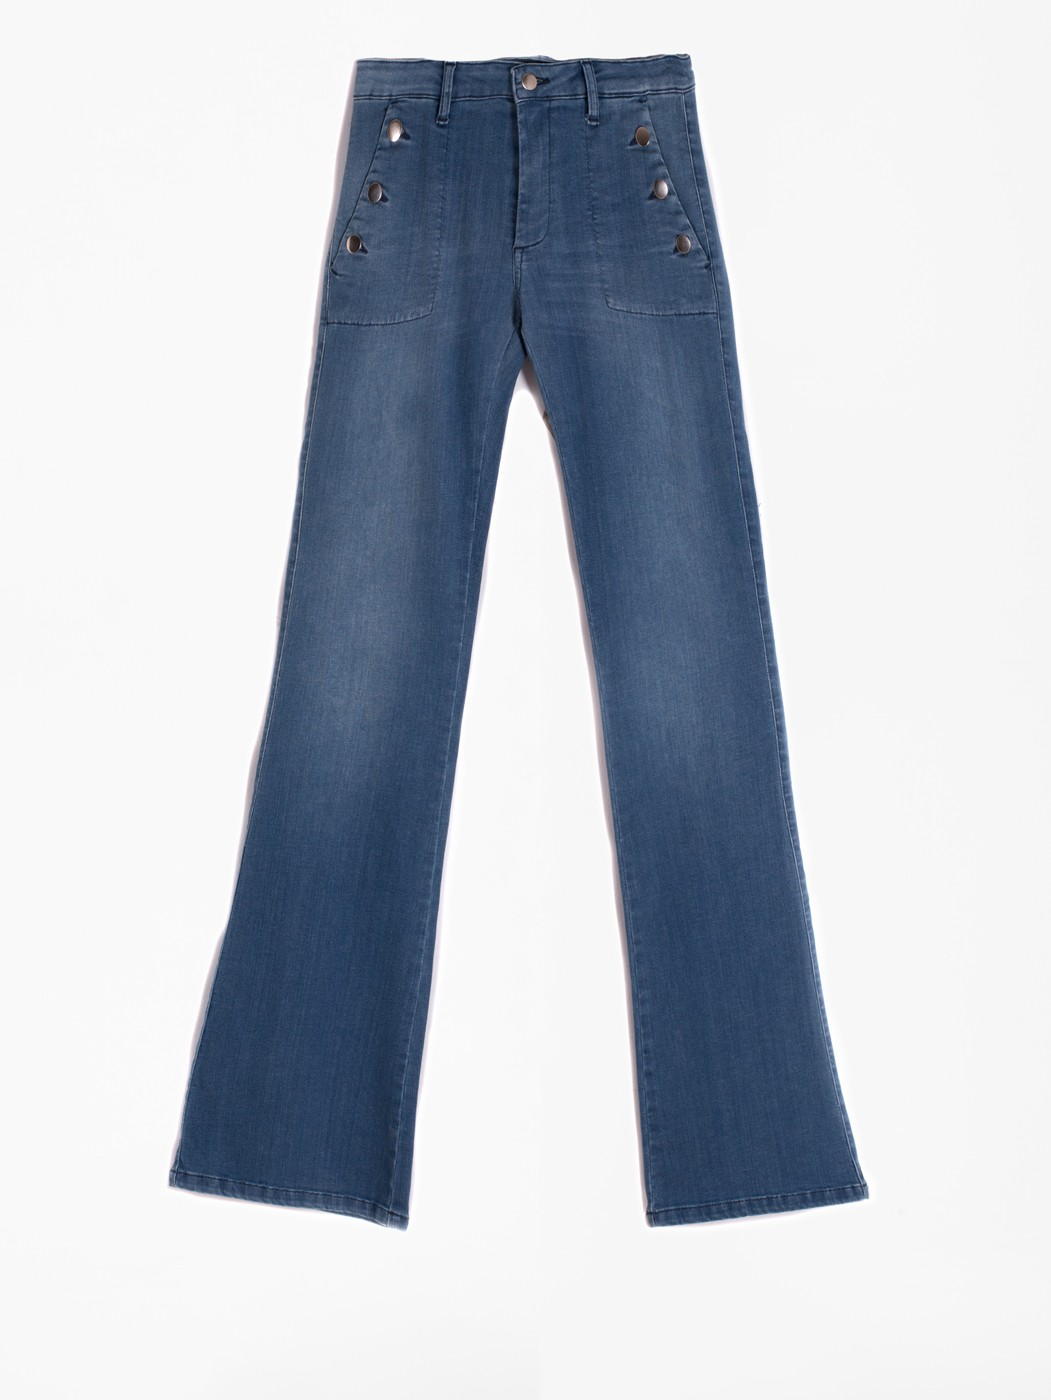 DENISE DENIM TROUSER